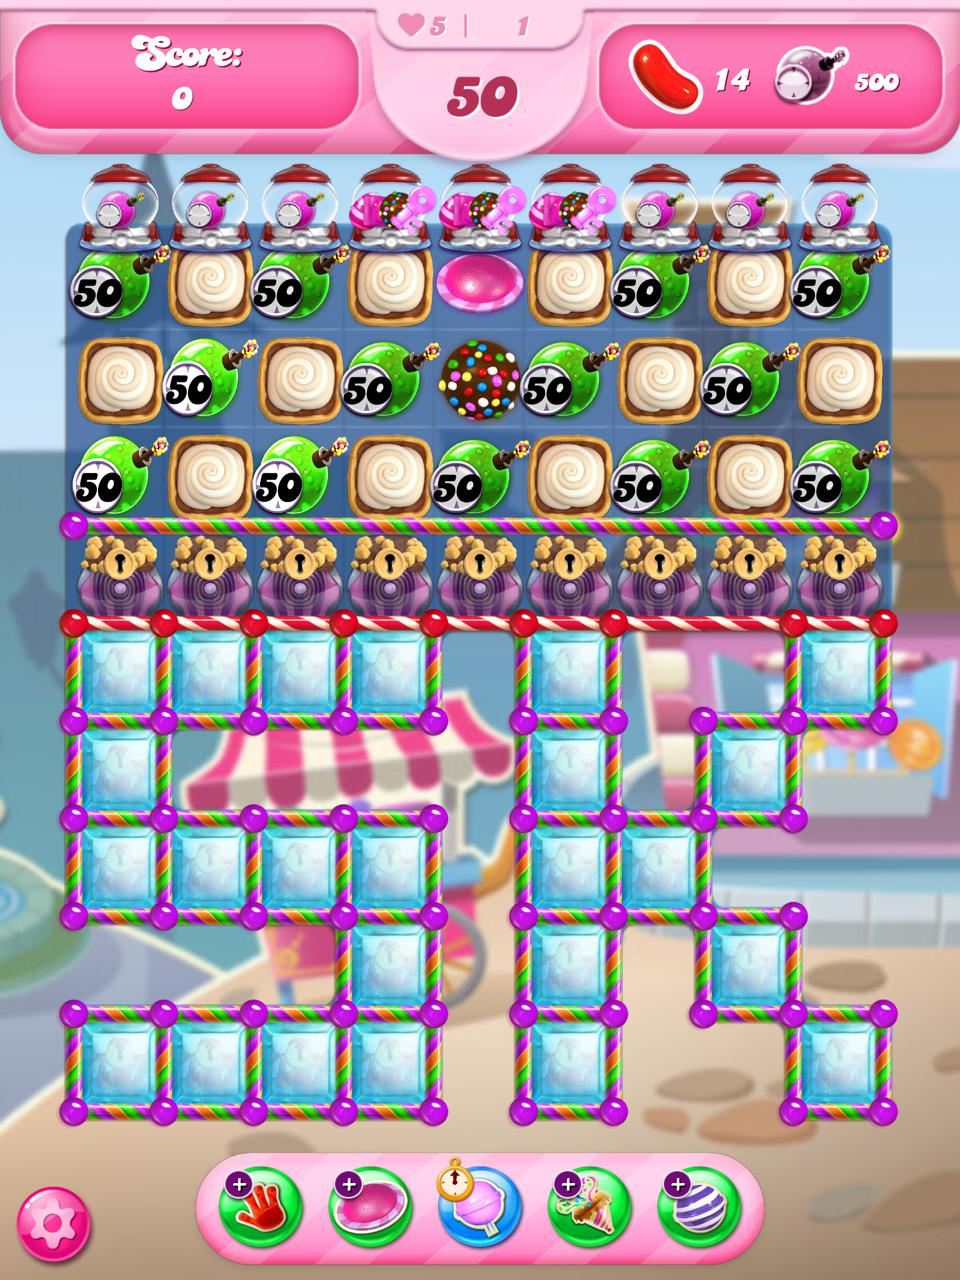 An in-game view of Candy Crush's historic level 5000.